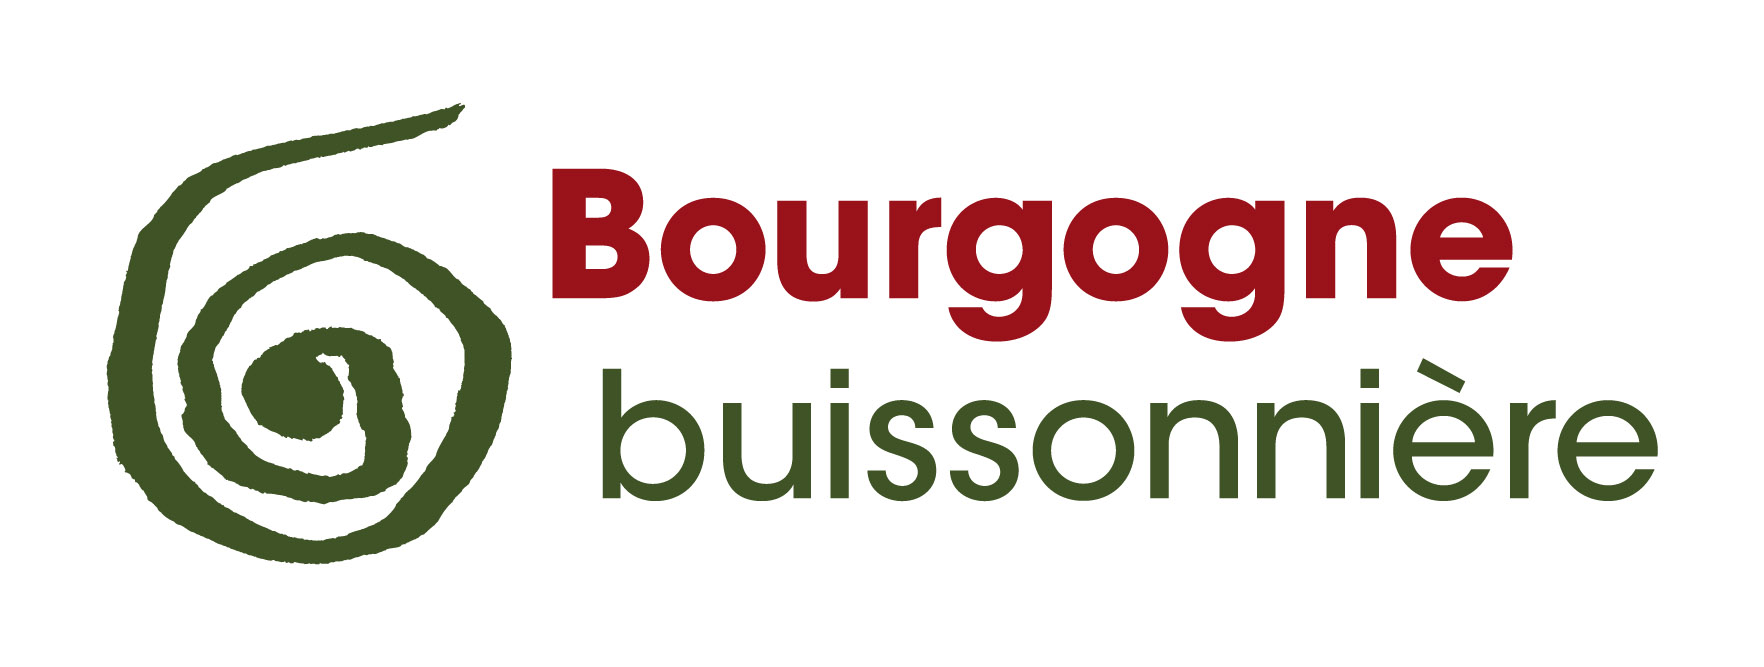 Bourgogne buissonni�re